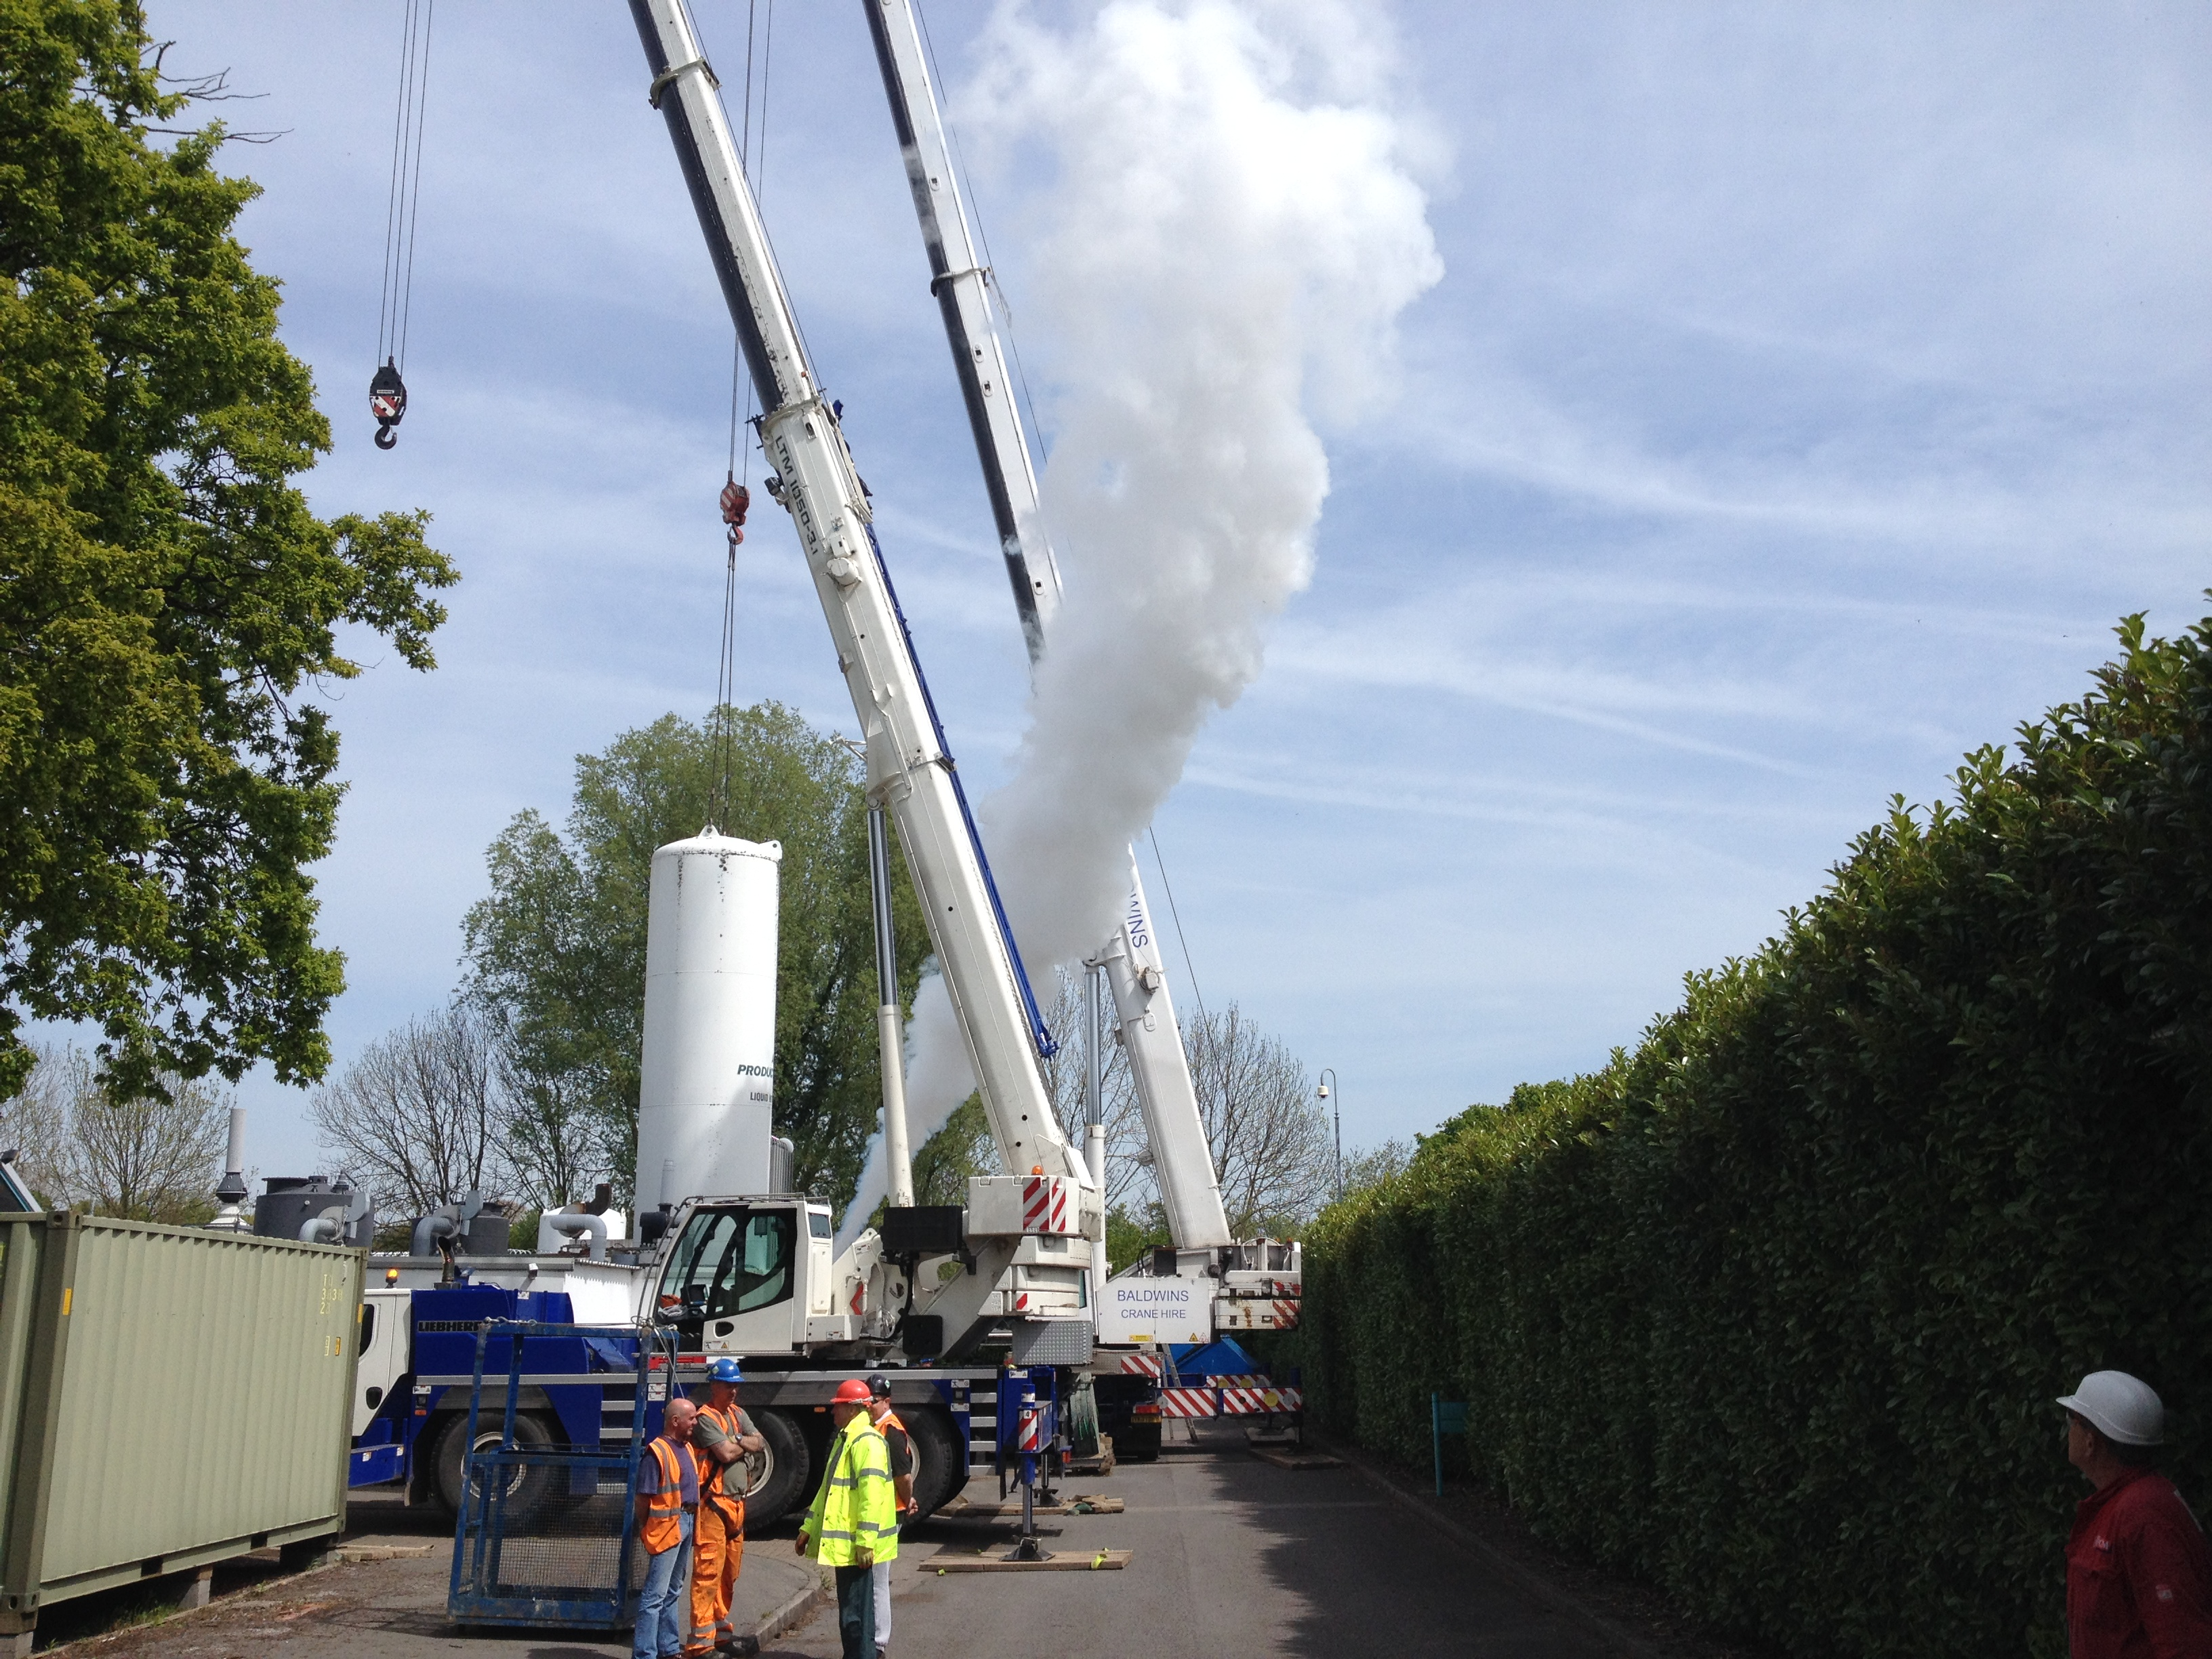 CTM Europe installing a cryogenic tank